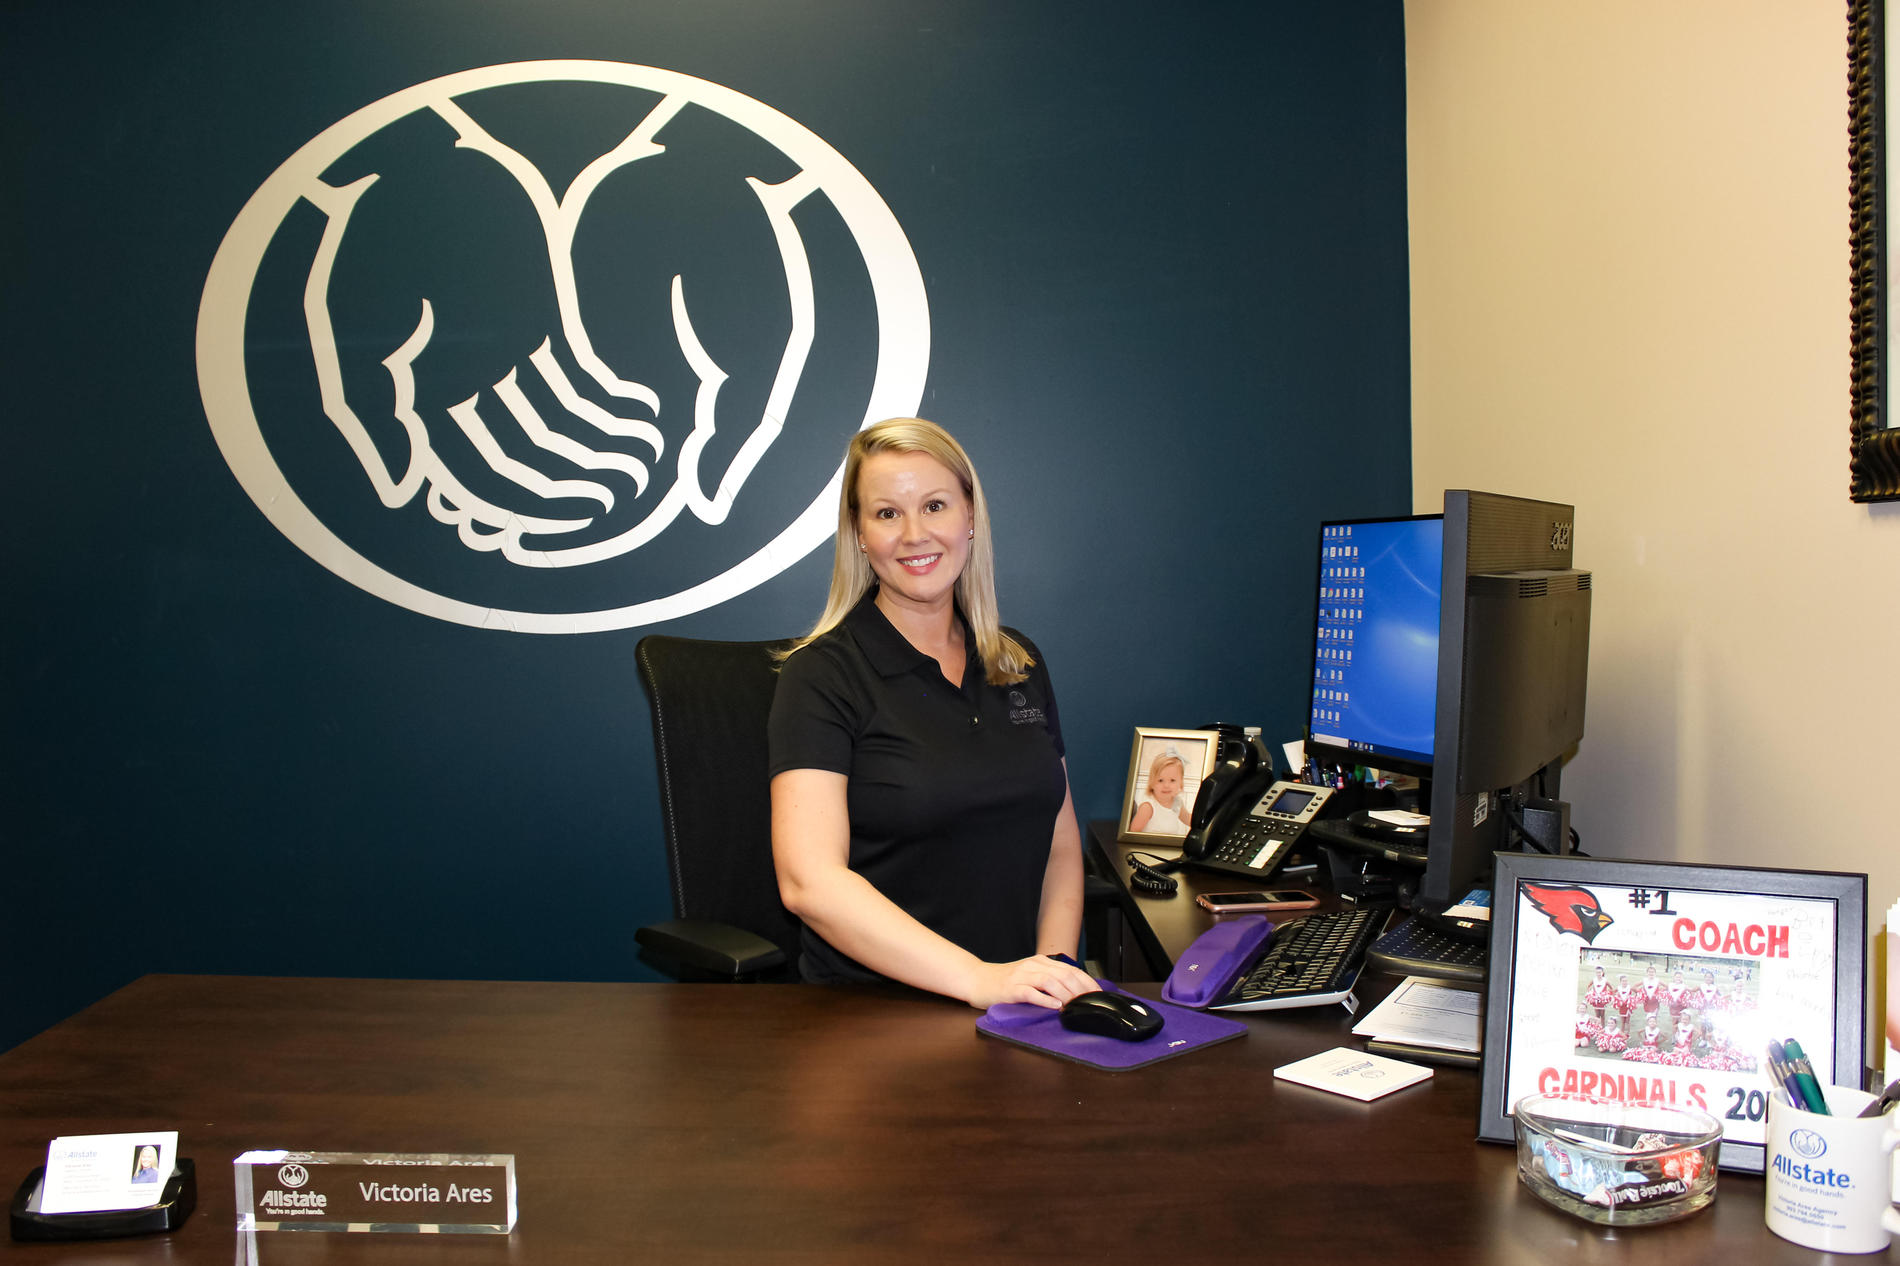 Allstate | Car Insurance in West Columbia, SC - Victoria Ares